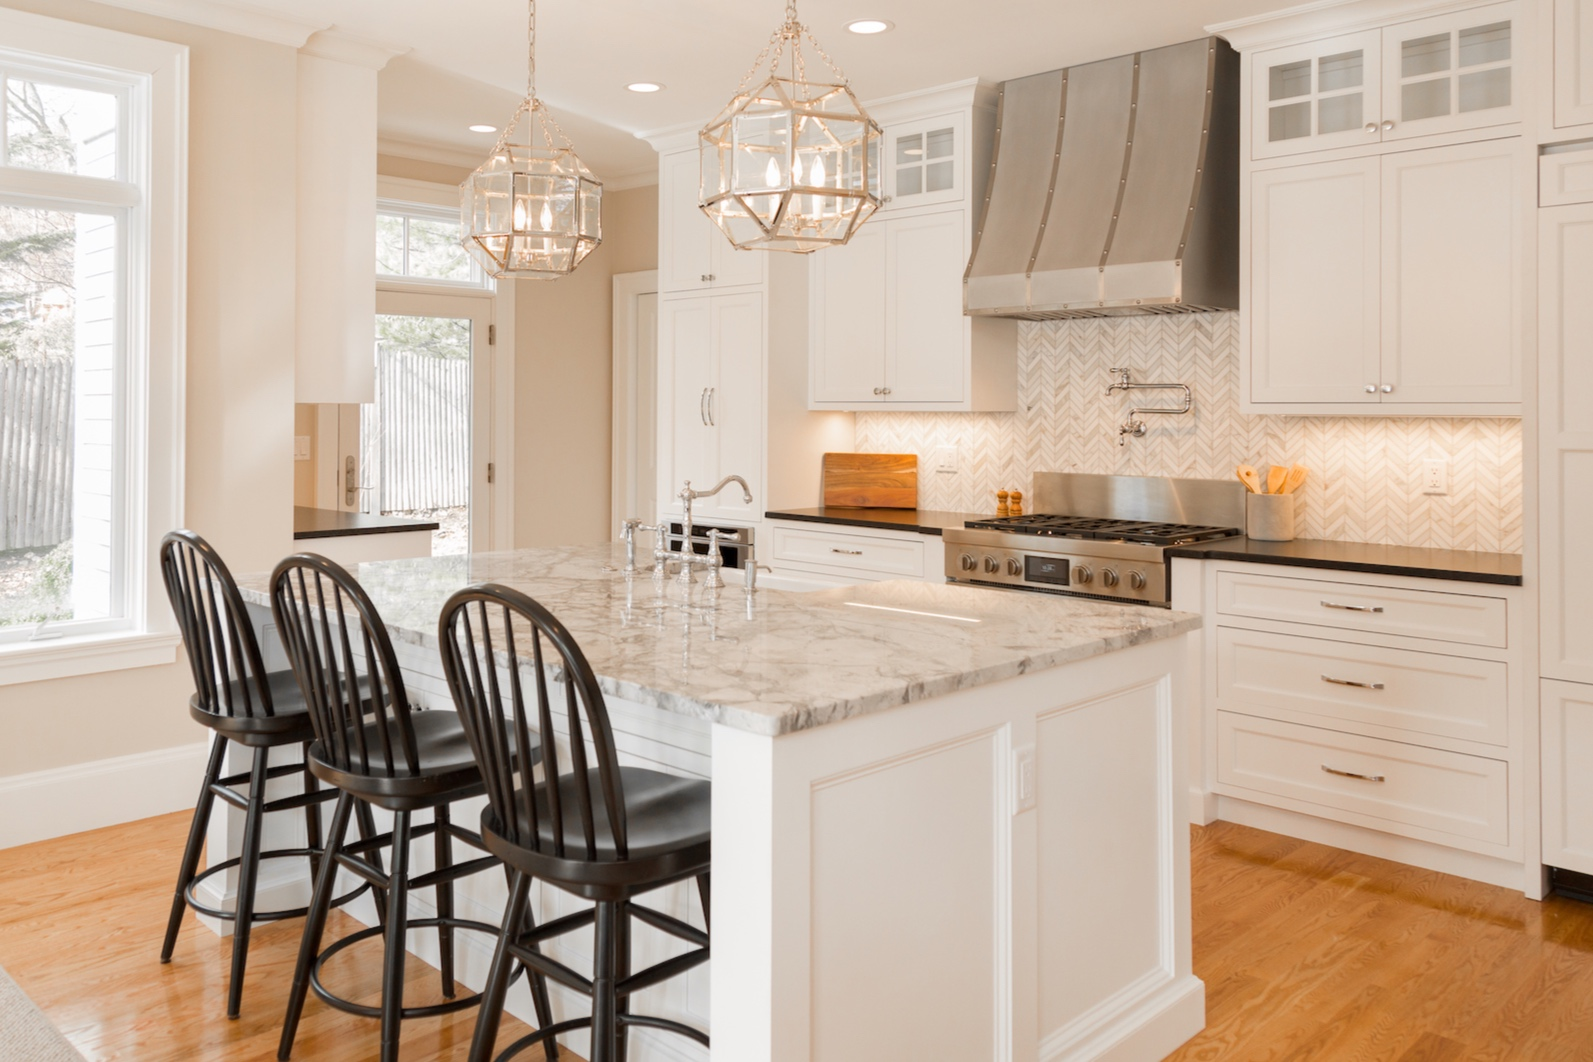 Winchester, MA Kitchen Renovation With Custom Countertop And Marble Island